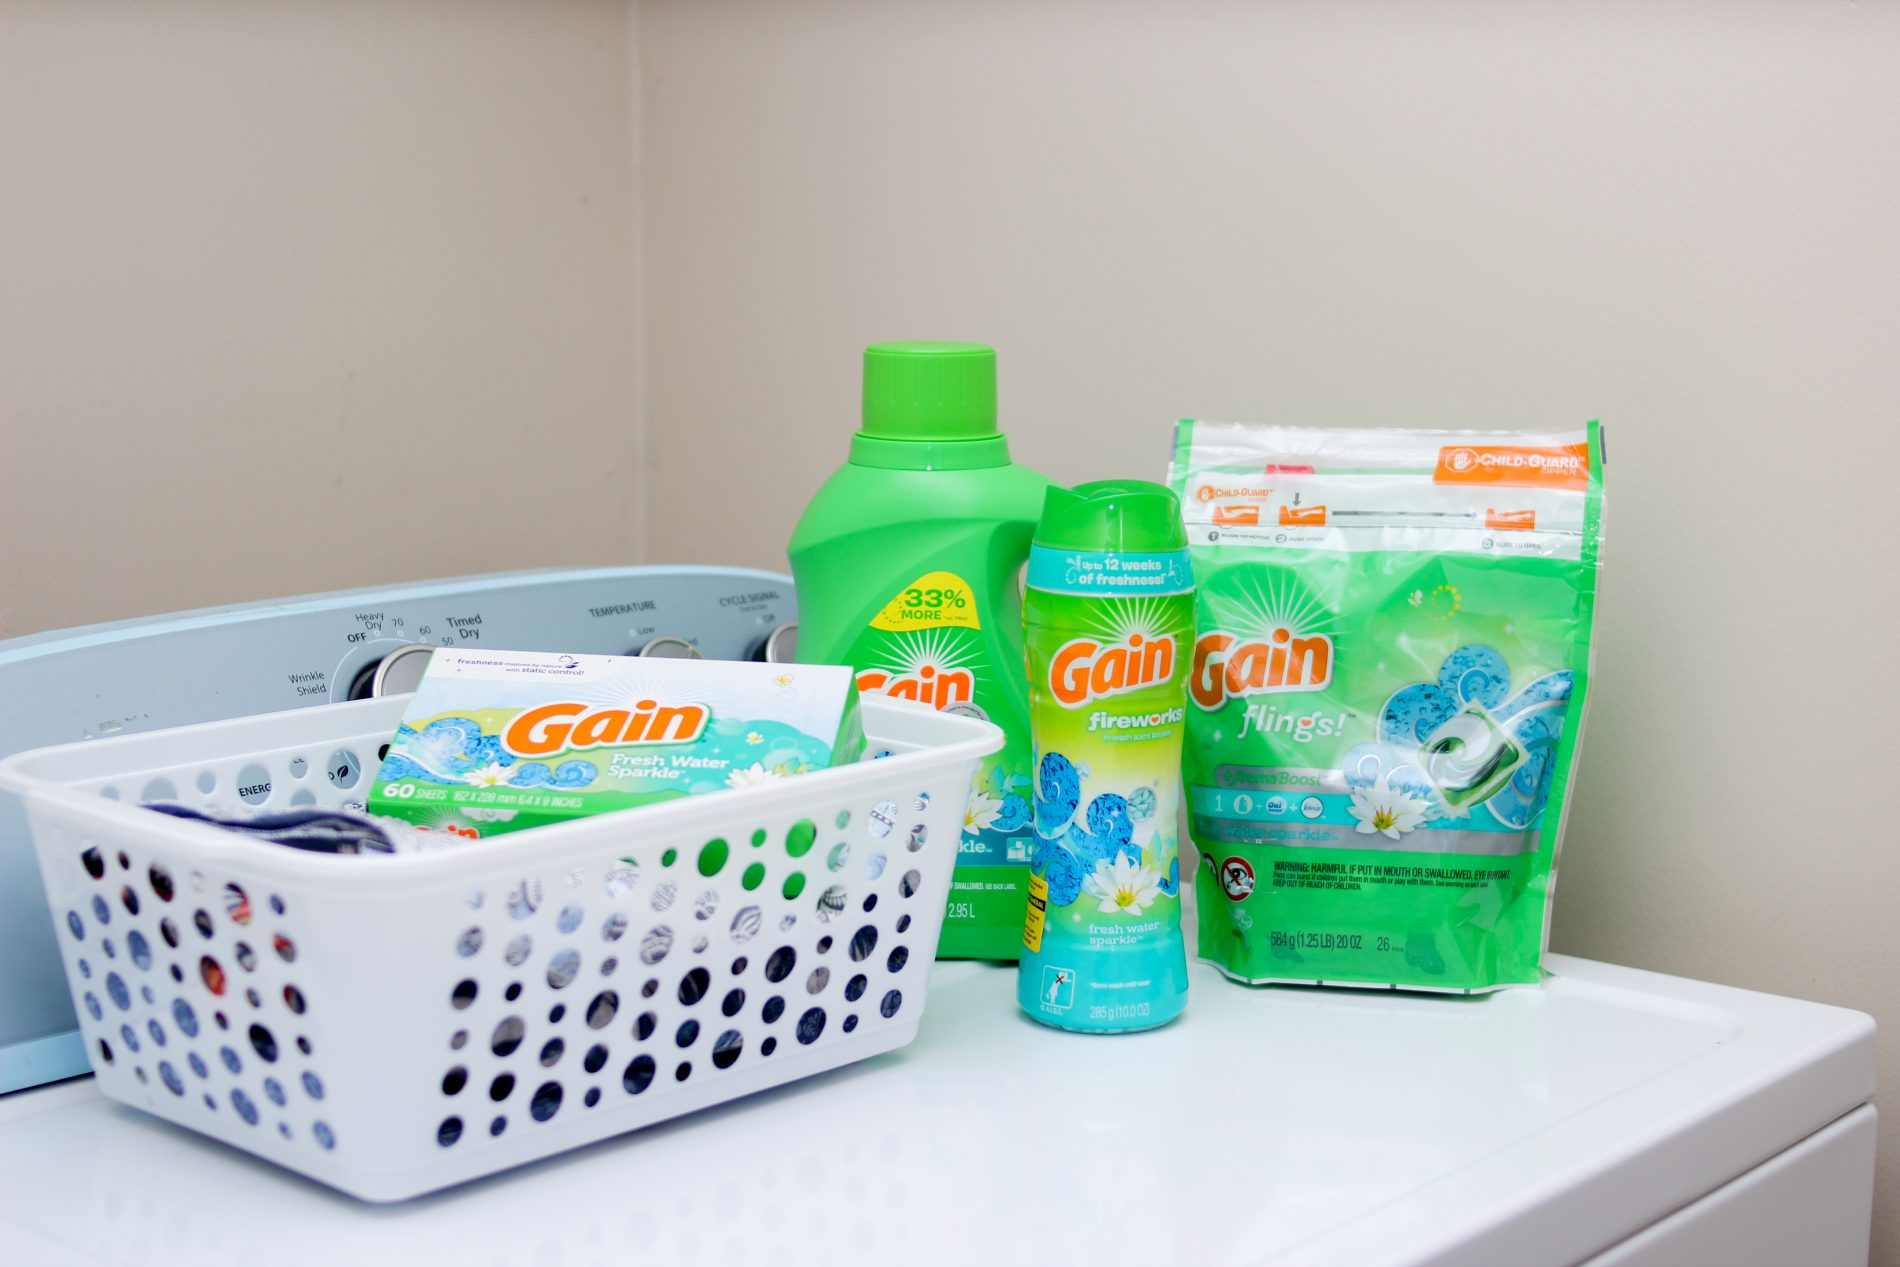 LAUNDRY DAY WITH GAIN FRESH WATER SPARKLE